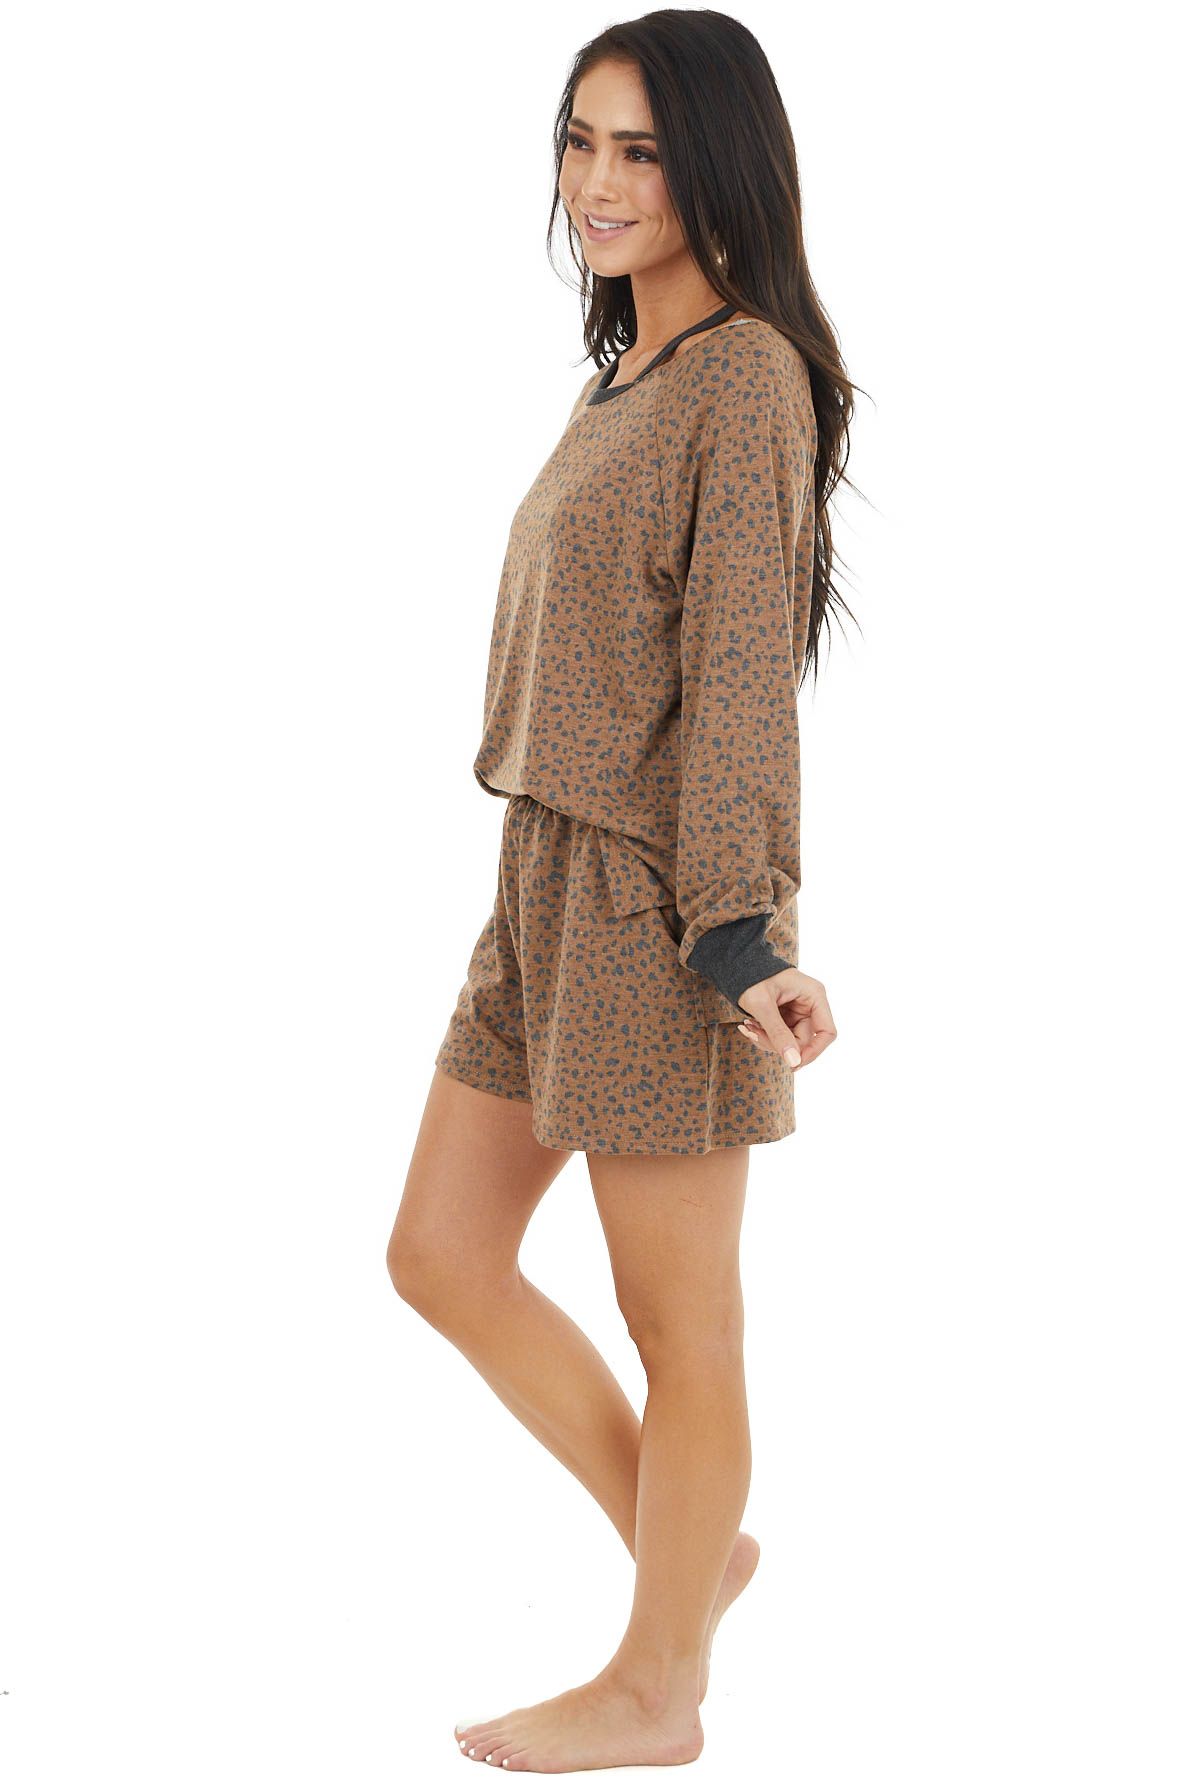 Cognac and Charcoal Leopard Print Top with Cold Shoulder